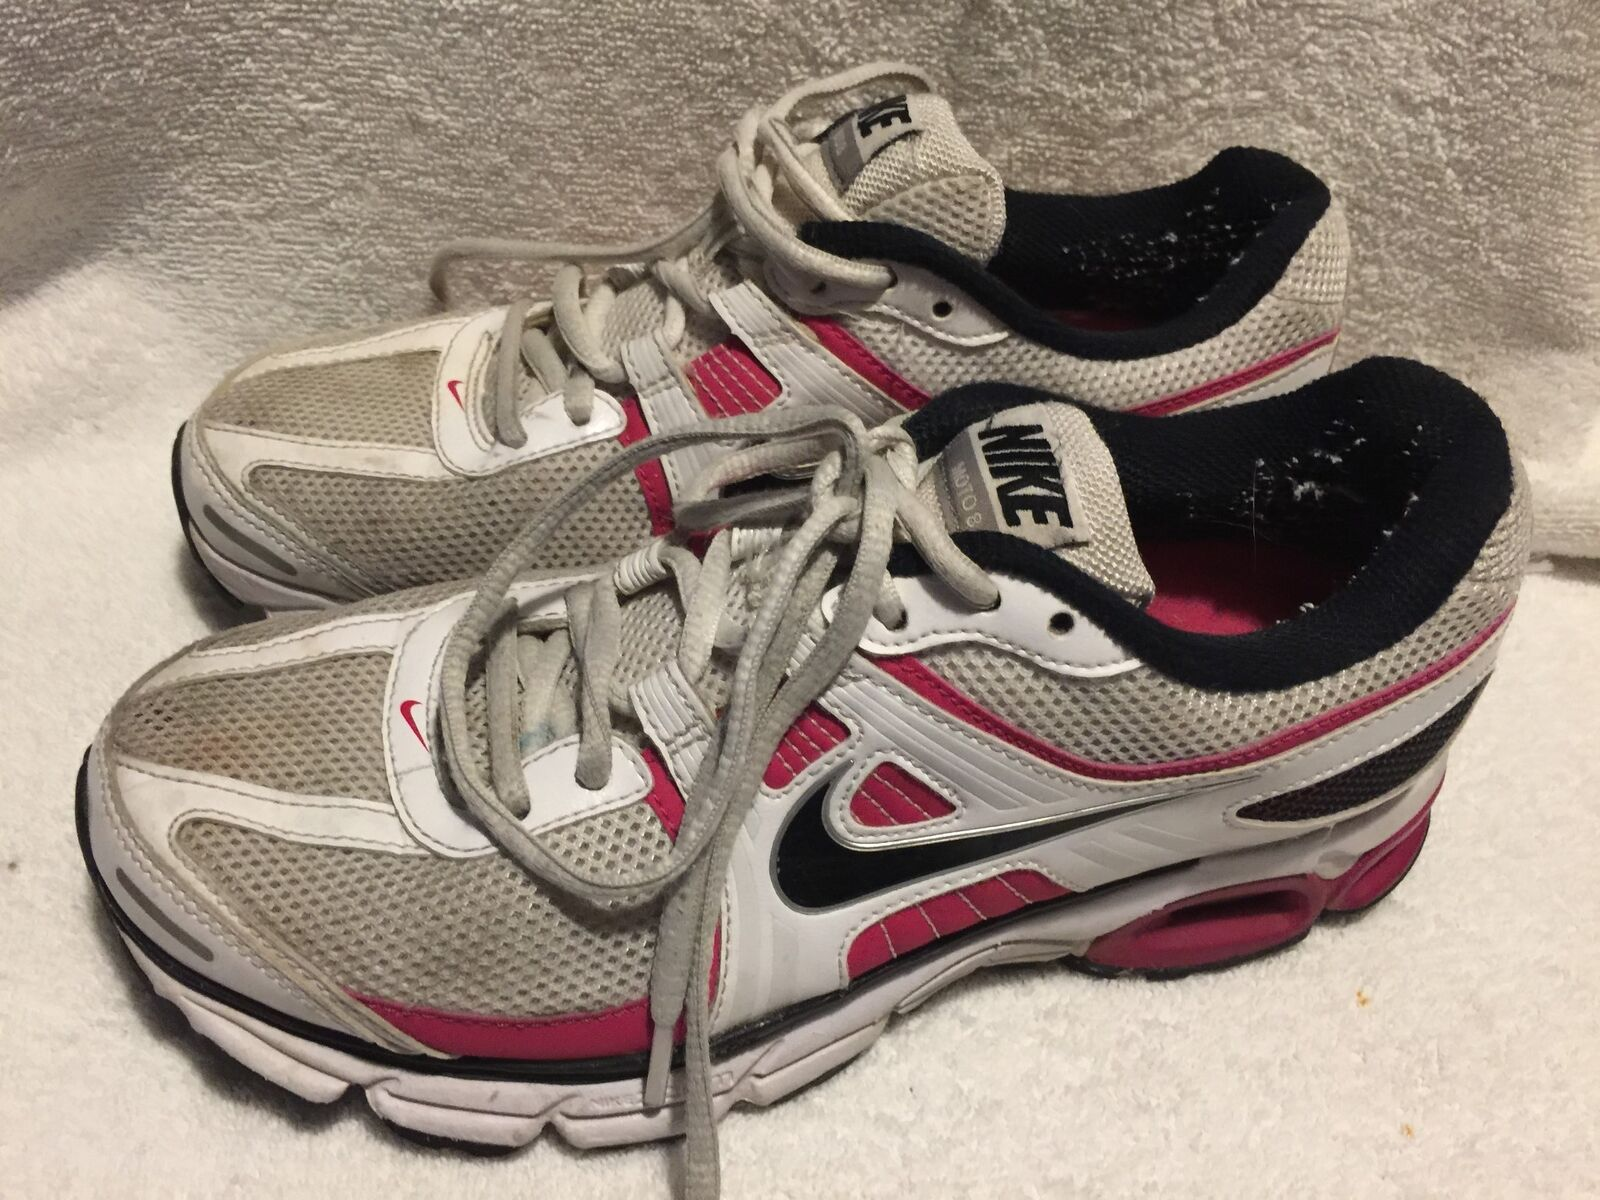 Used/Worn Nike size Air Moto8 Womens size Nike 7.5 running shoes 2cc937